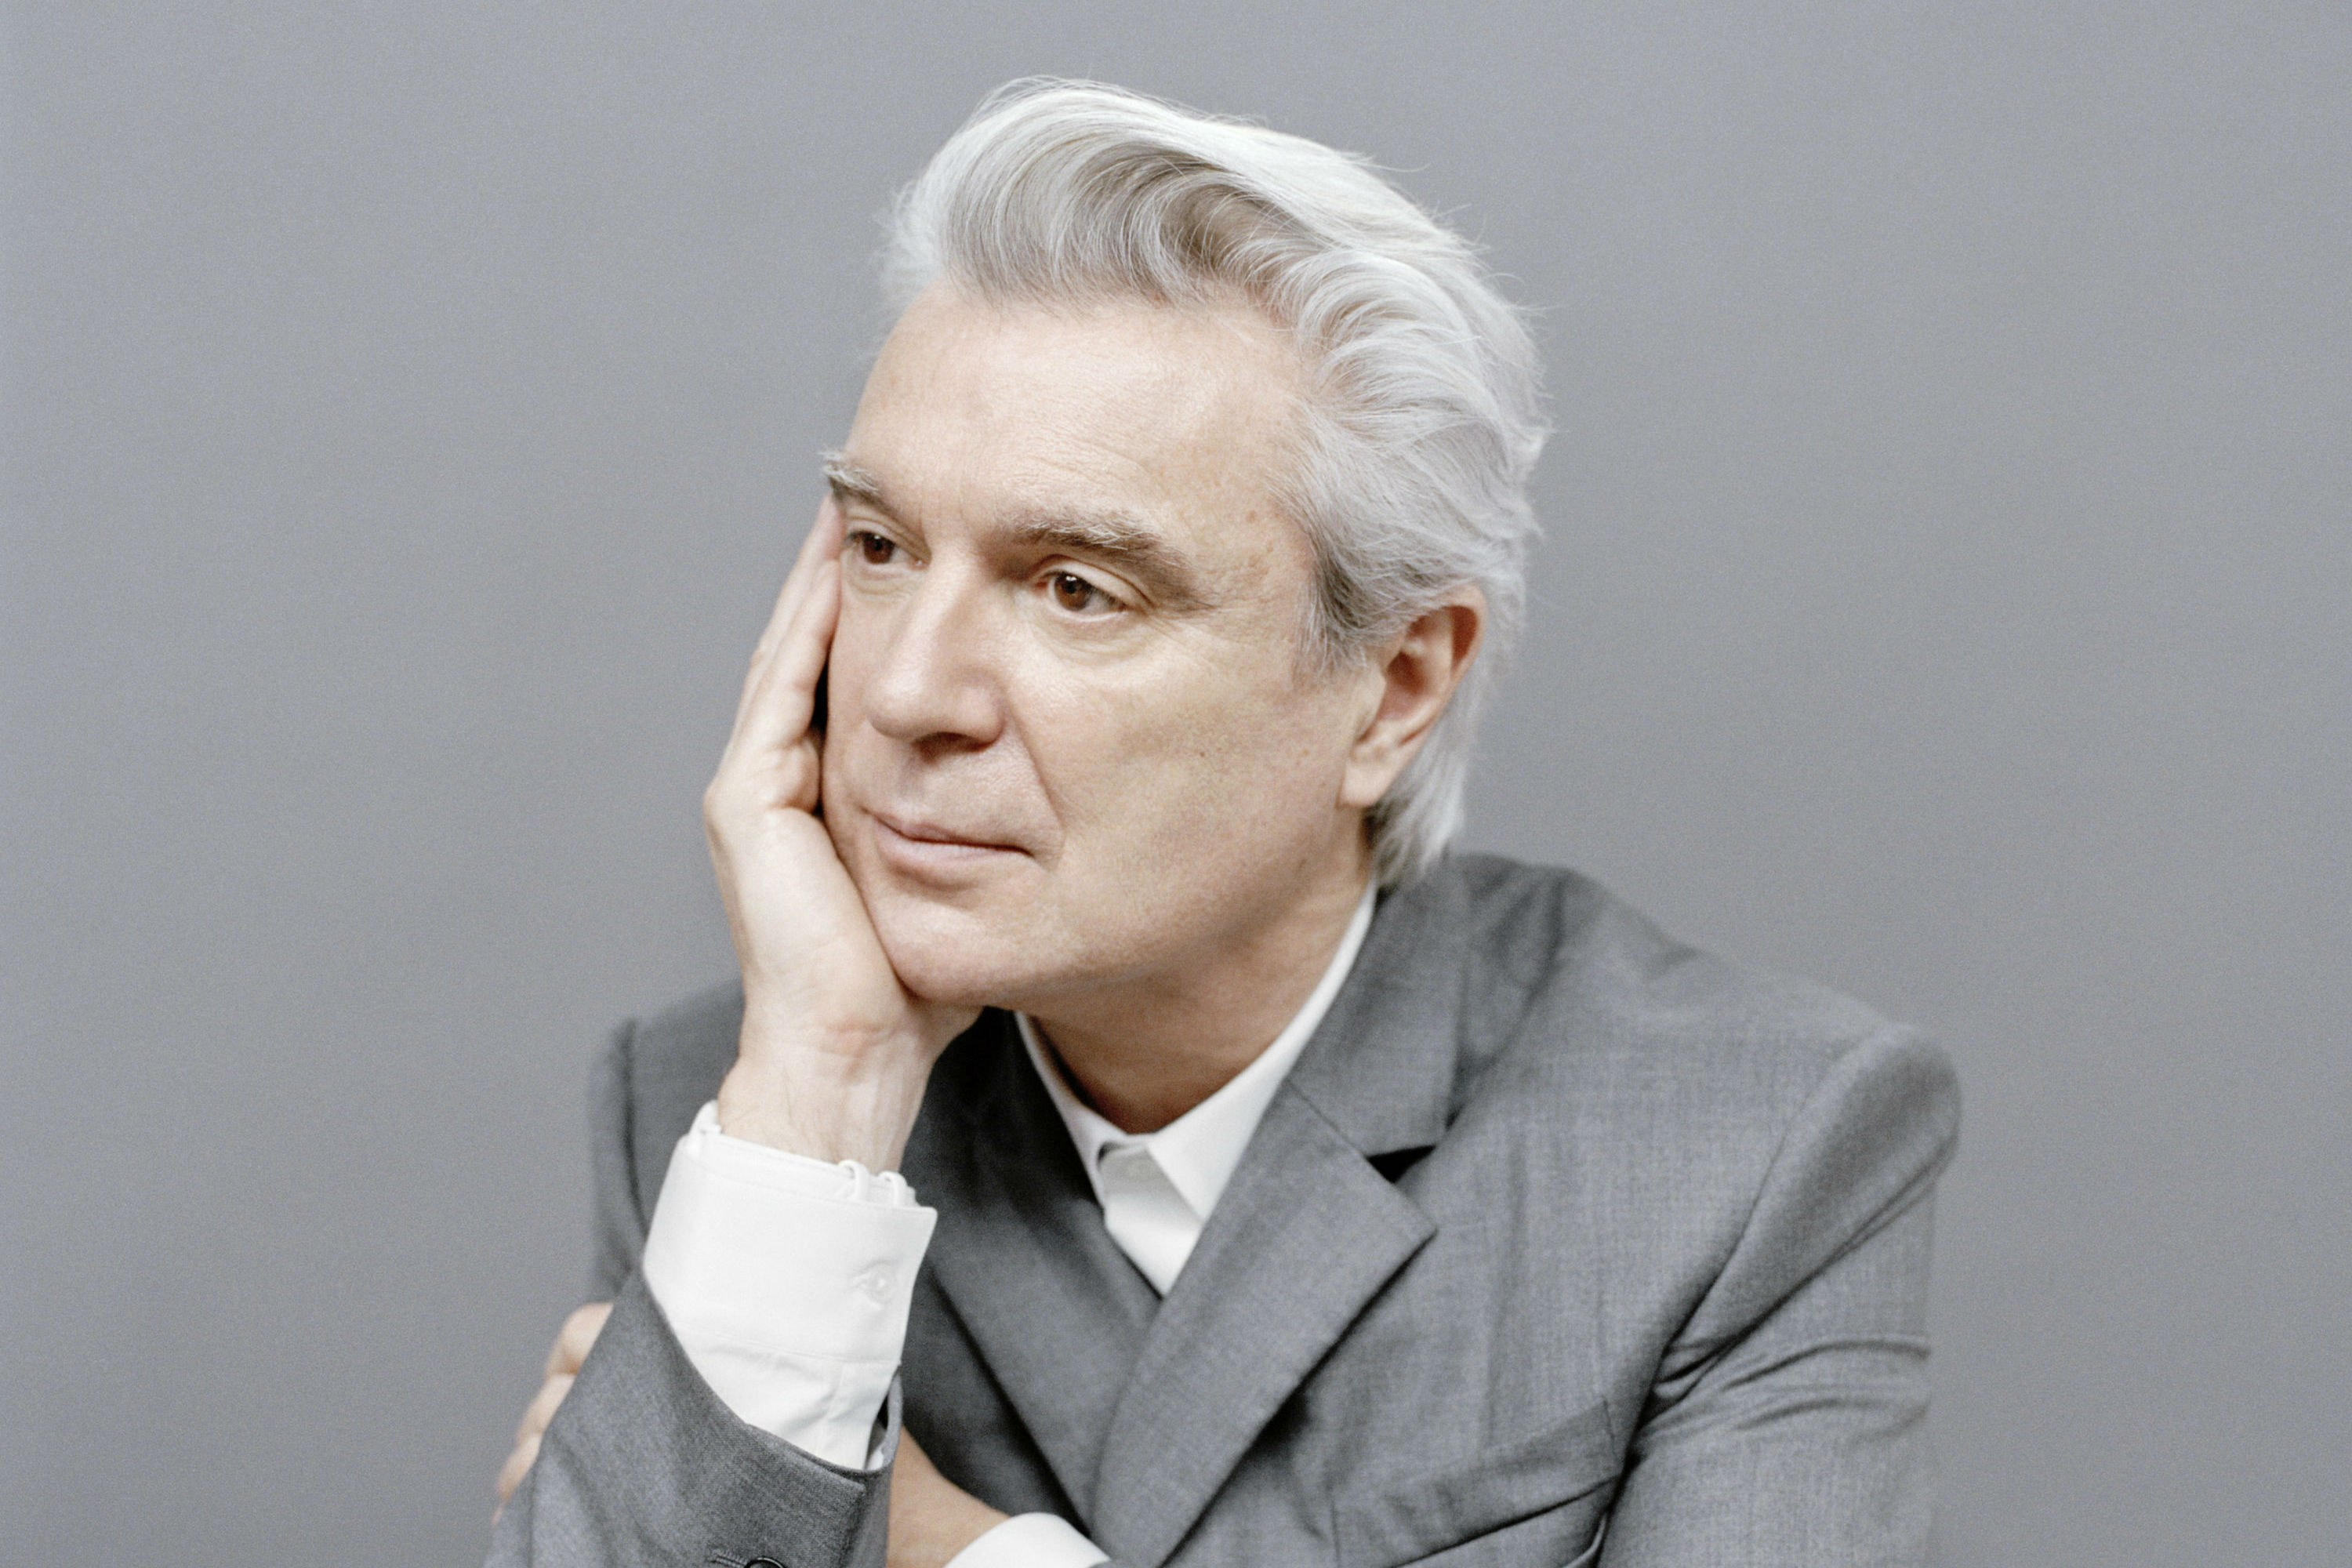 David Byrne airs new track 'This Is That'